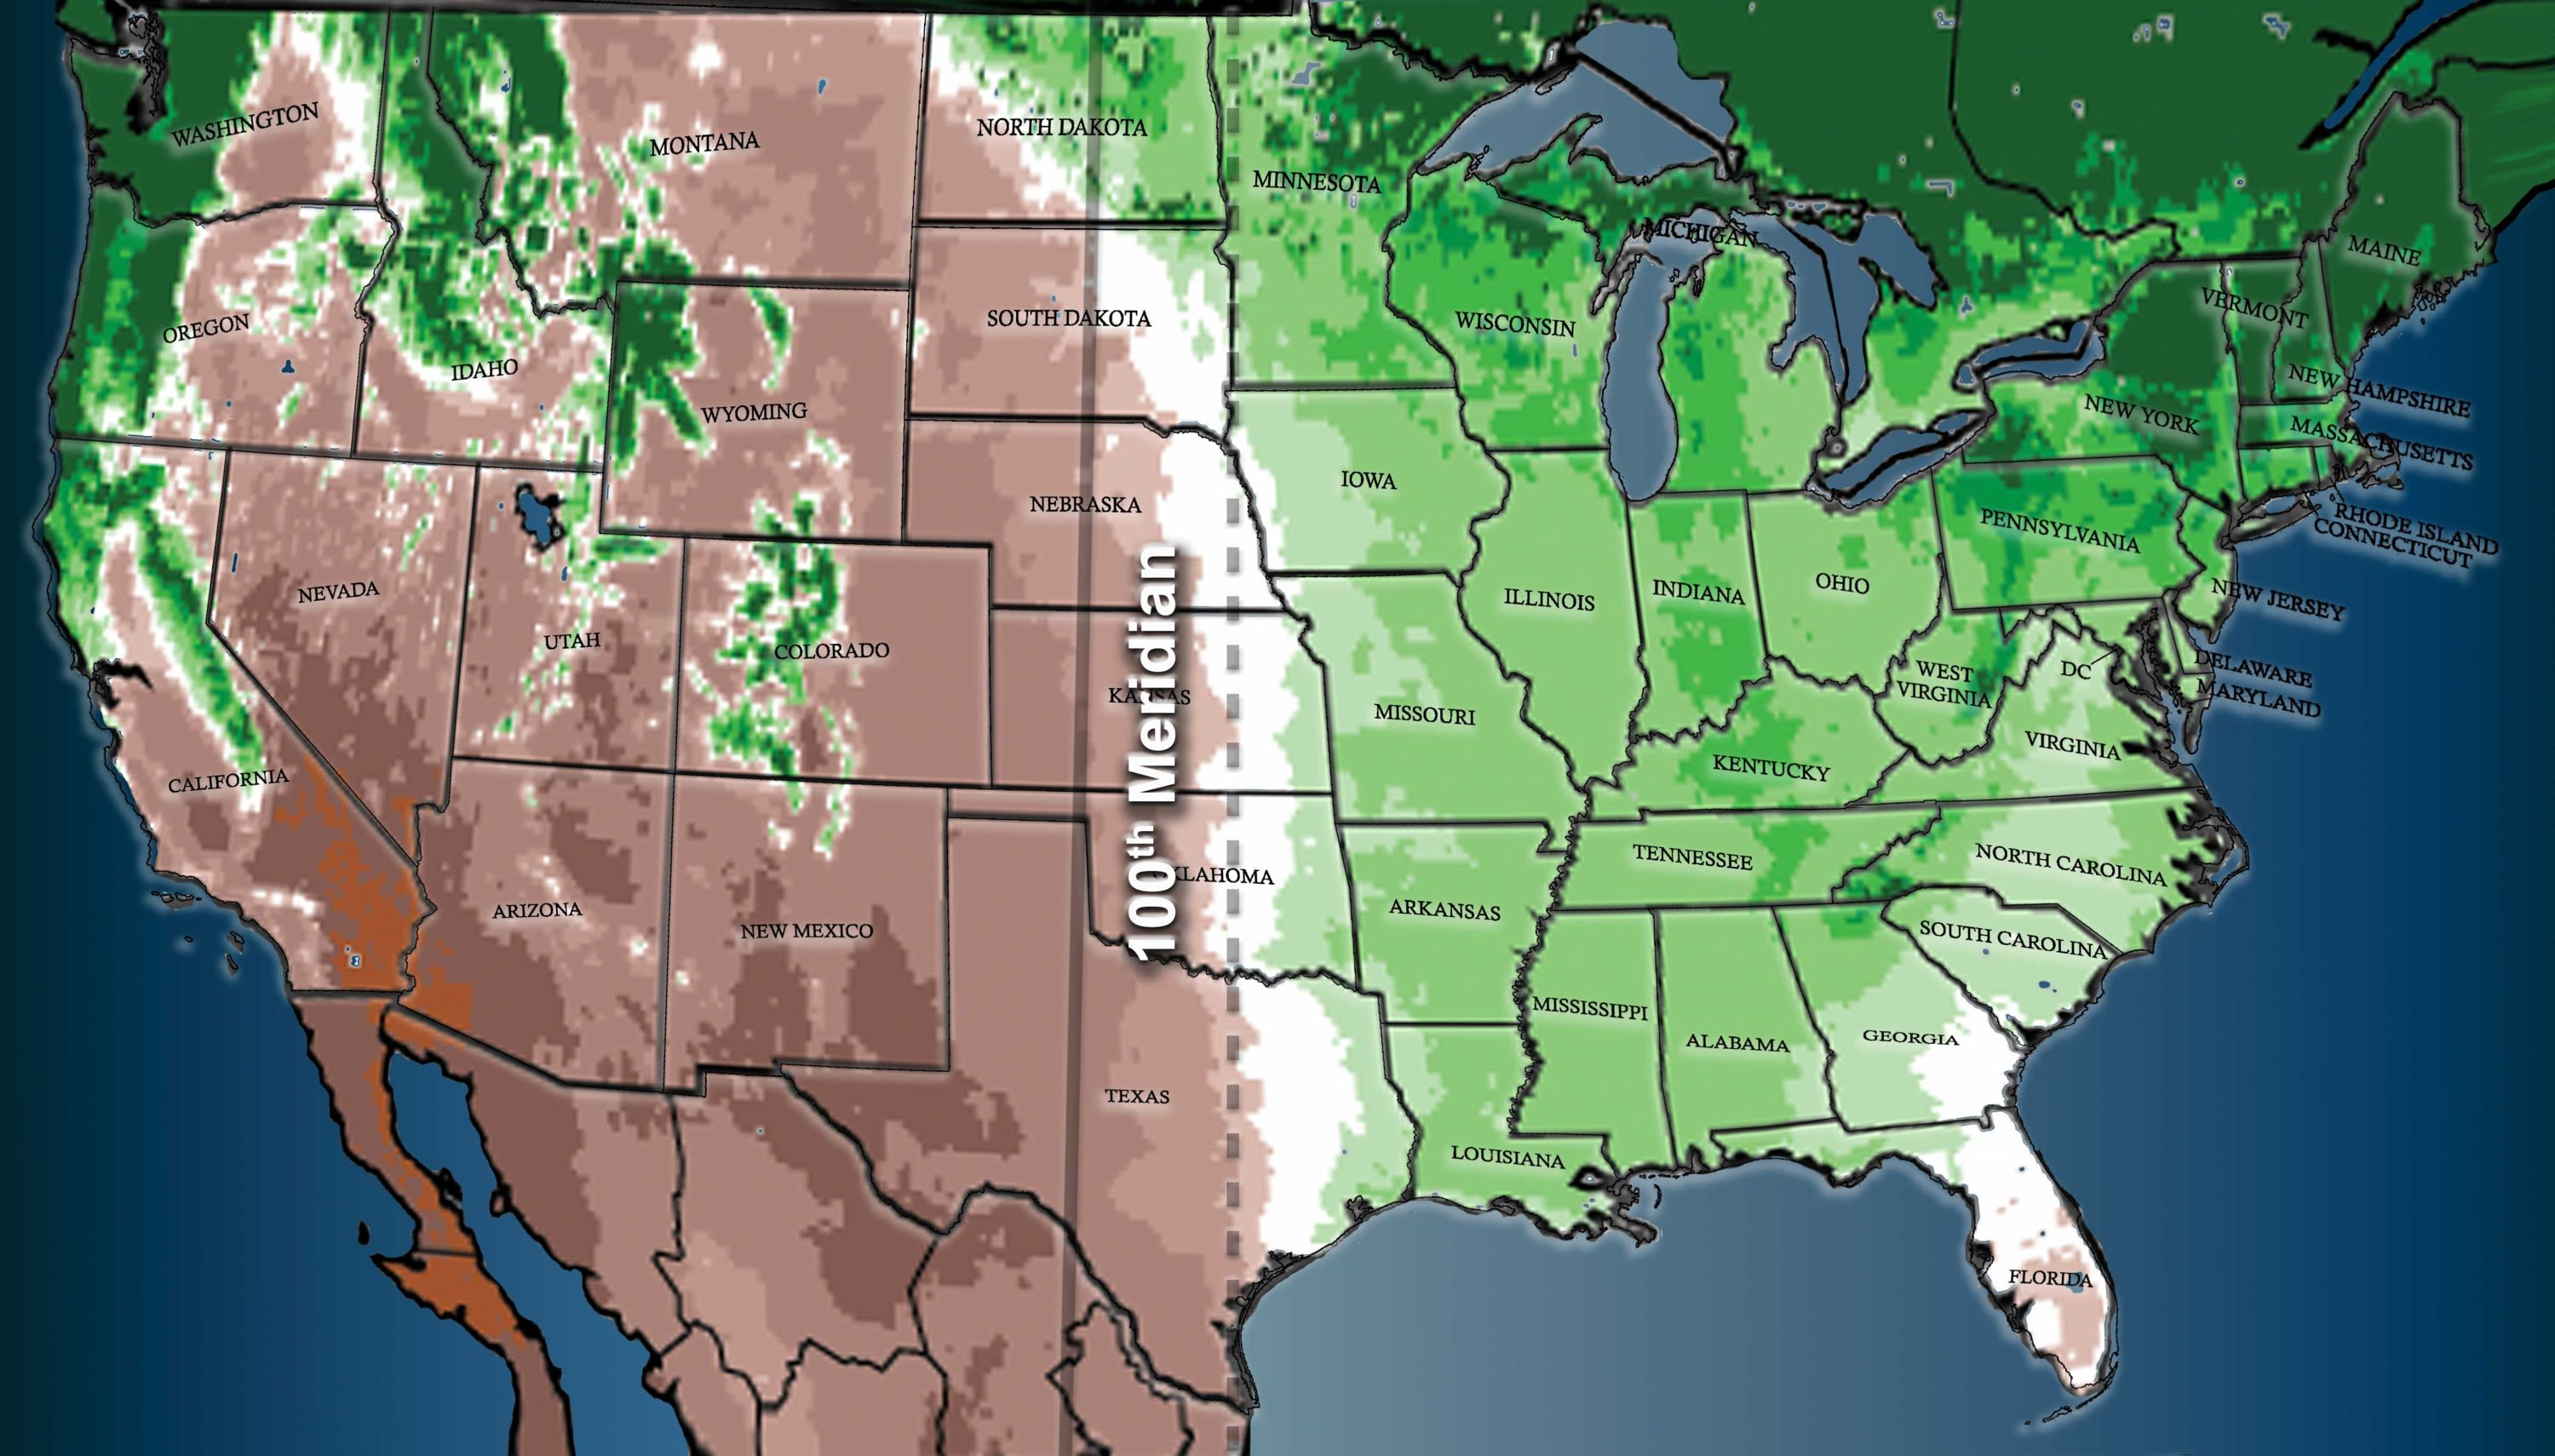 the 100th meridian west solid line coincides with the climate divide between the relatively moist eastern us and the more arid west